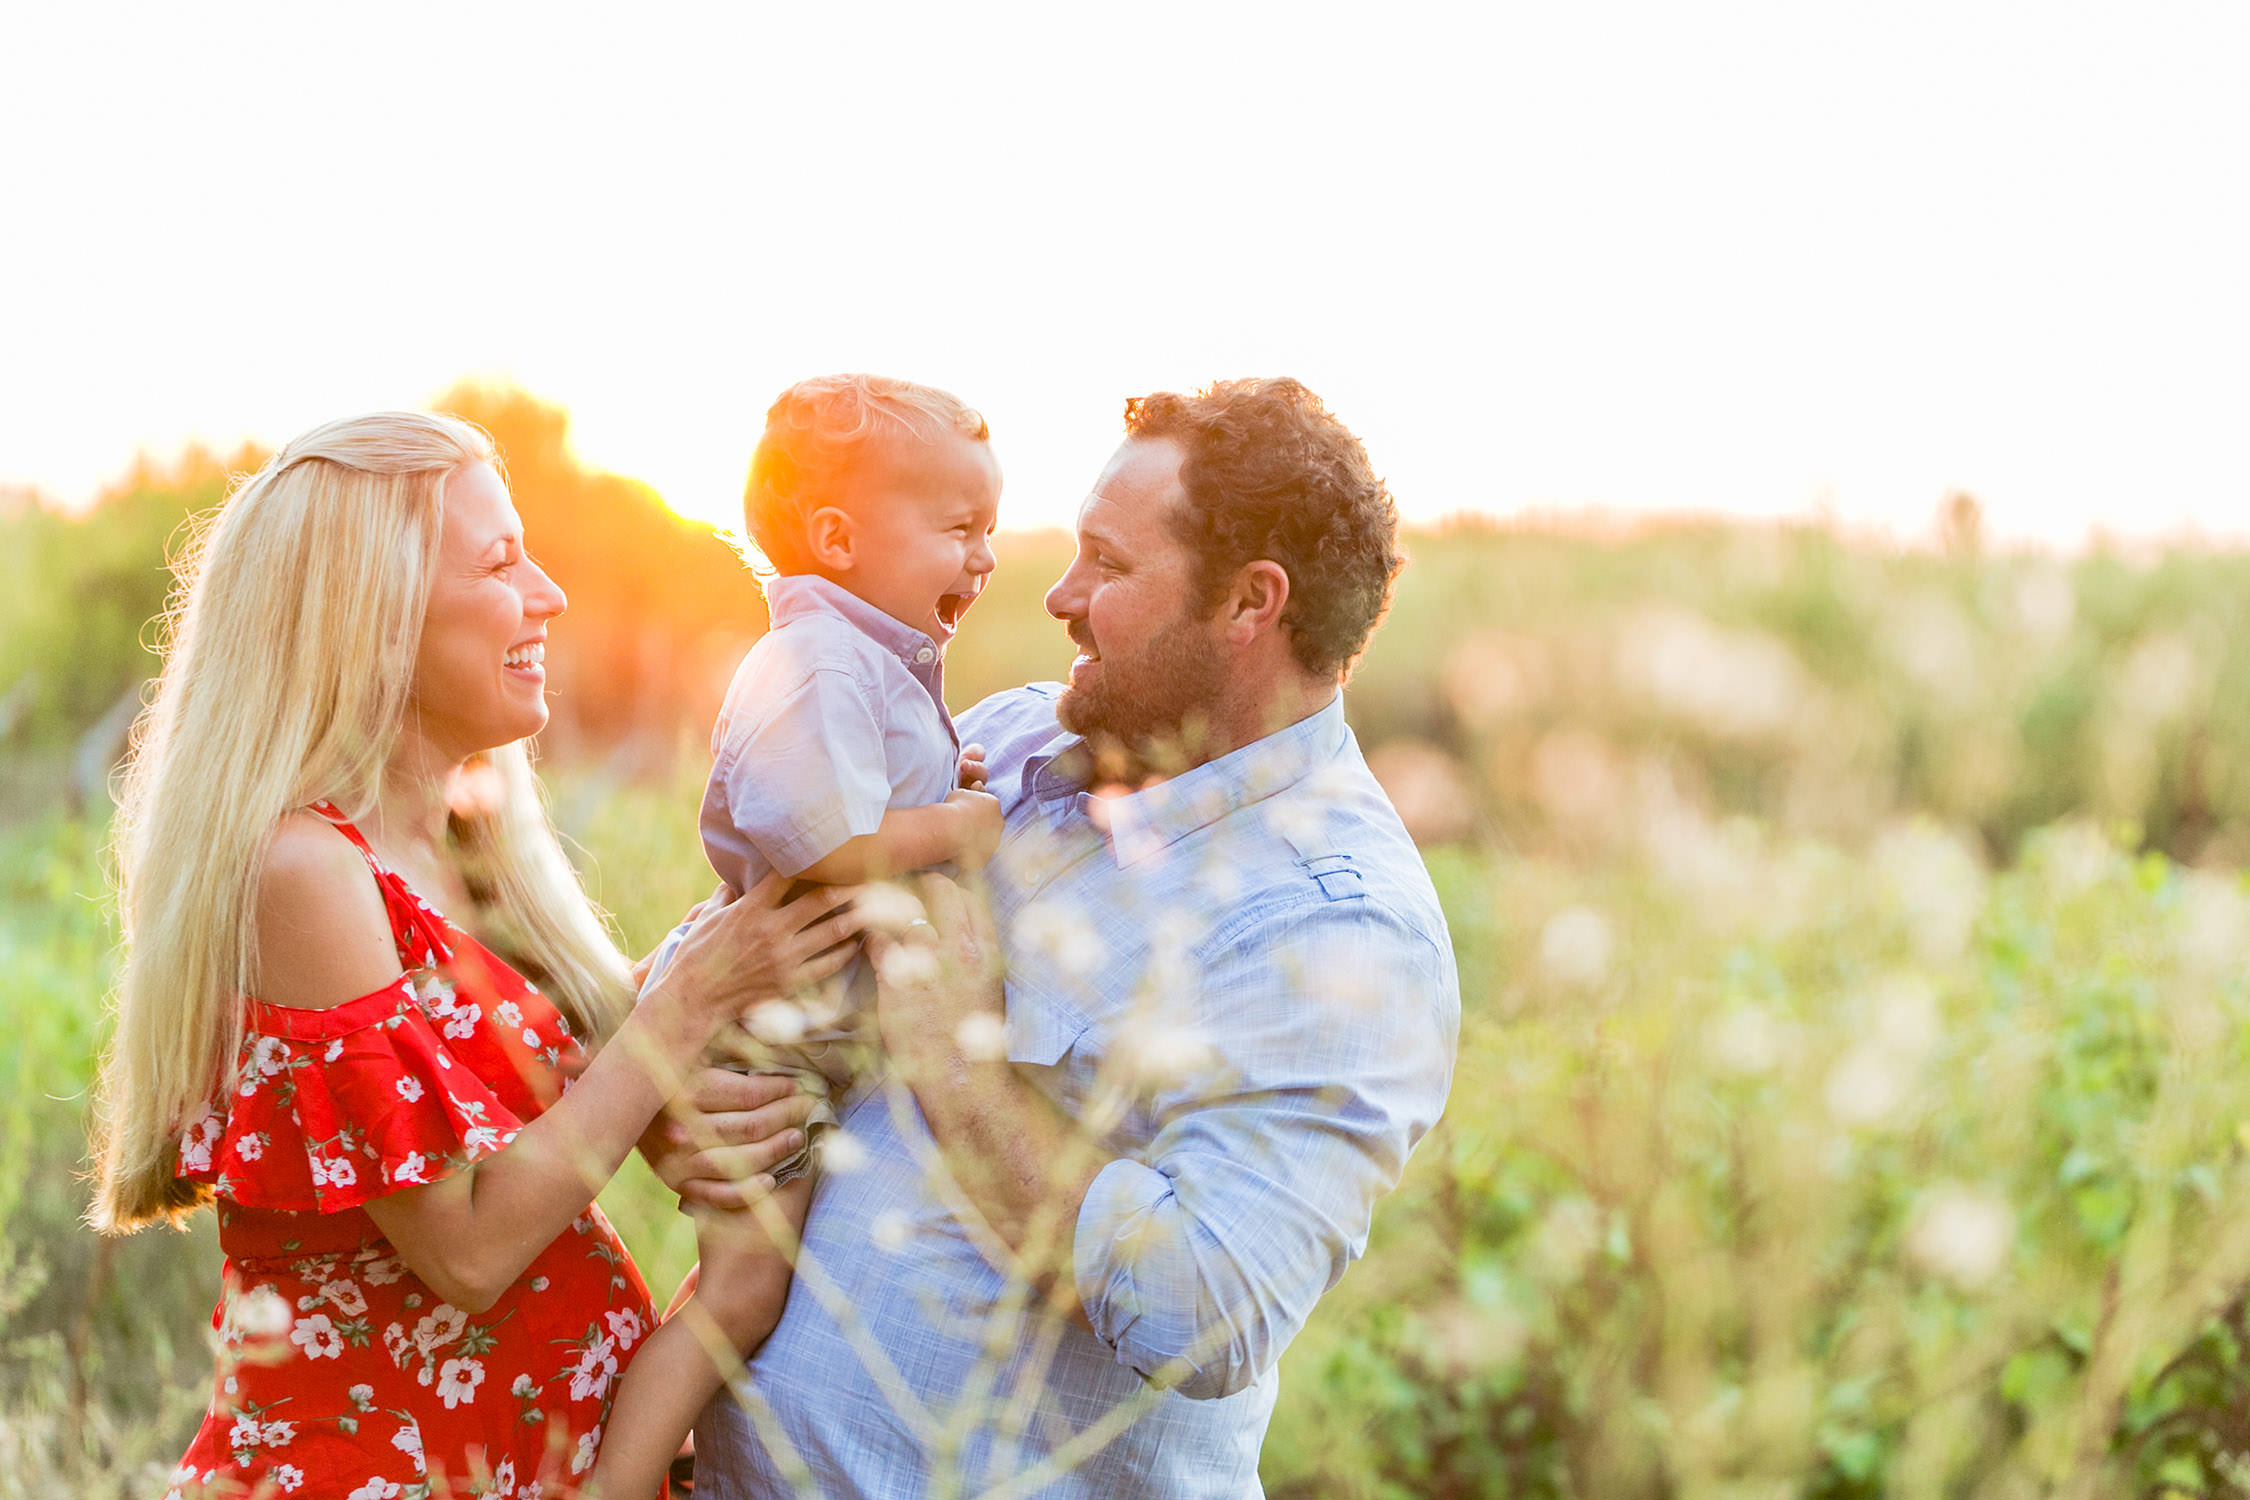 Family Portraits session at Gum Grove Park, California